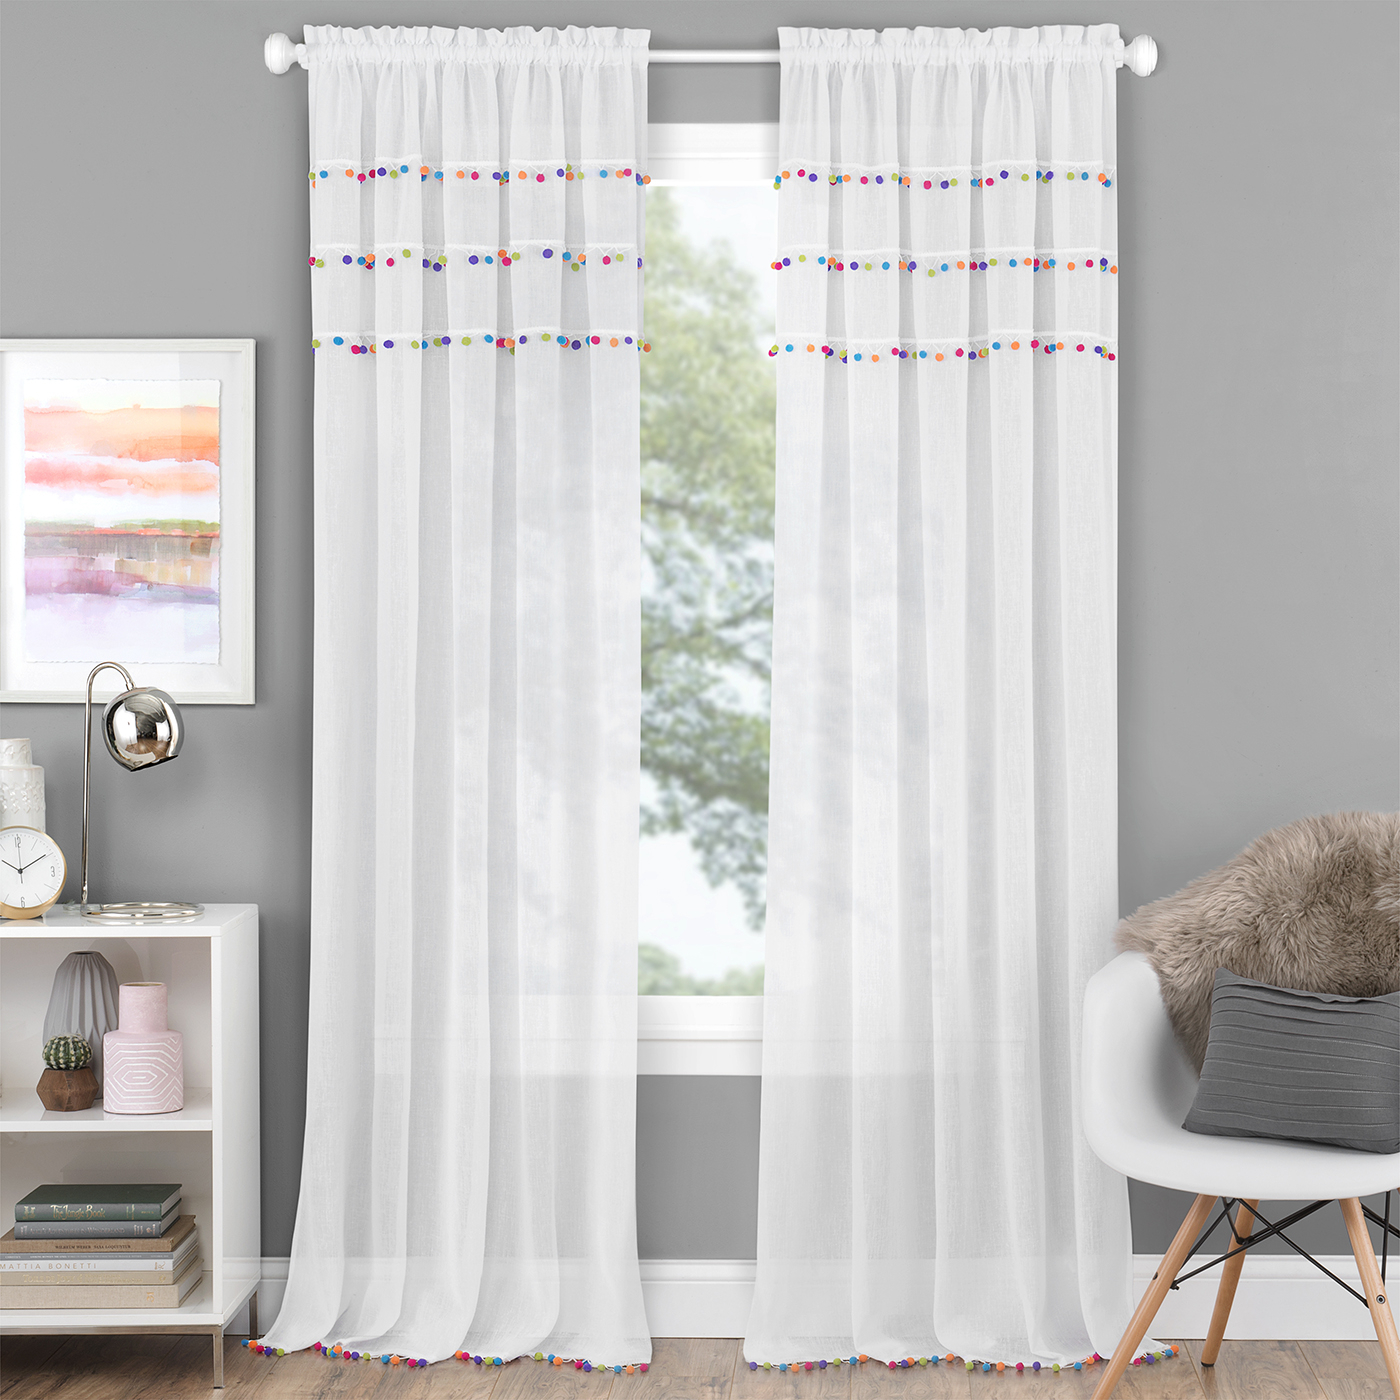 Details About Achim Home Furnishing: Pom Pom Bright Semi Sheer Window Curtain Rod Pocket Panel With Willow Rod Pocket Window Curtain Panels (View 13 of 30)